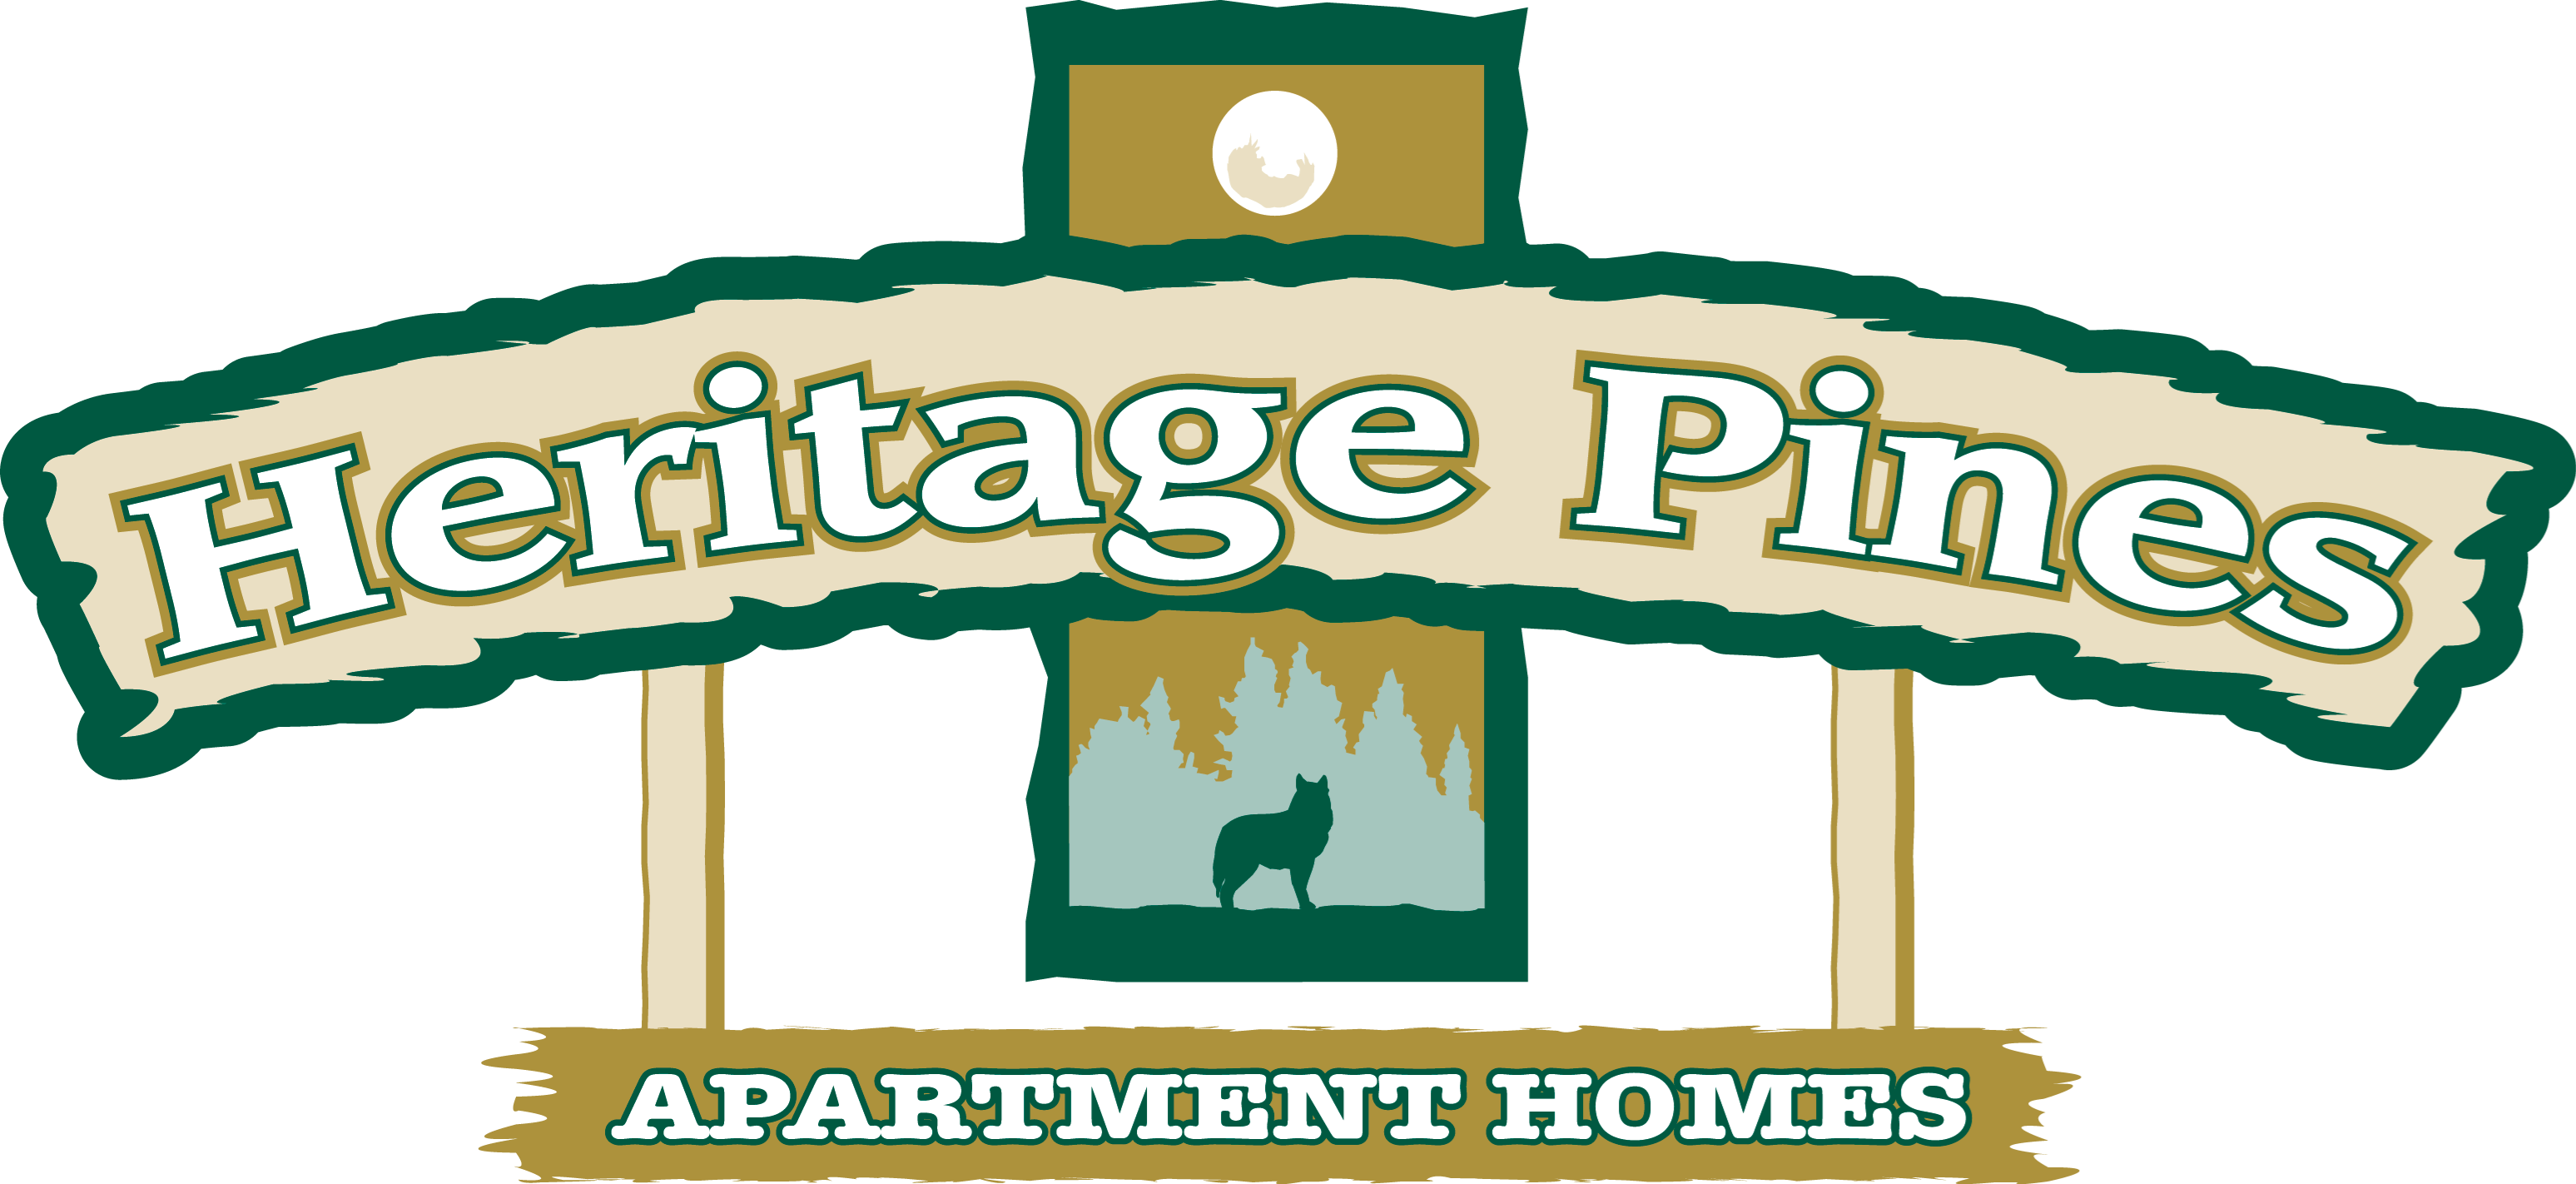 Heritage Pines Apartments for rent in Tampa, FL. Make this community your new home or visit other Concord Rents communities at ConcordRents.com. Logo